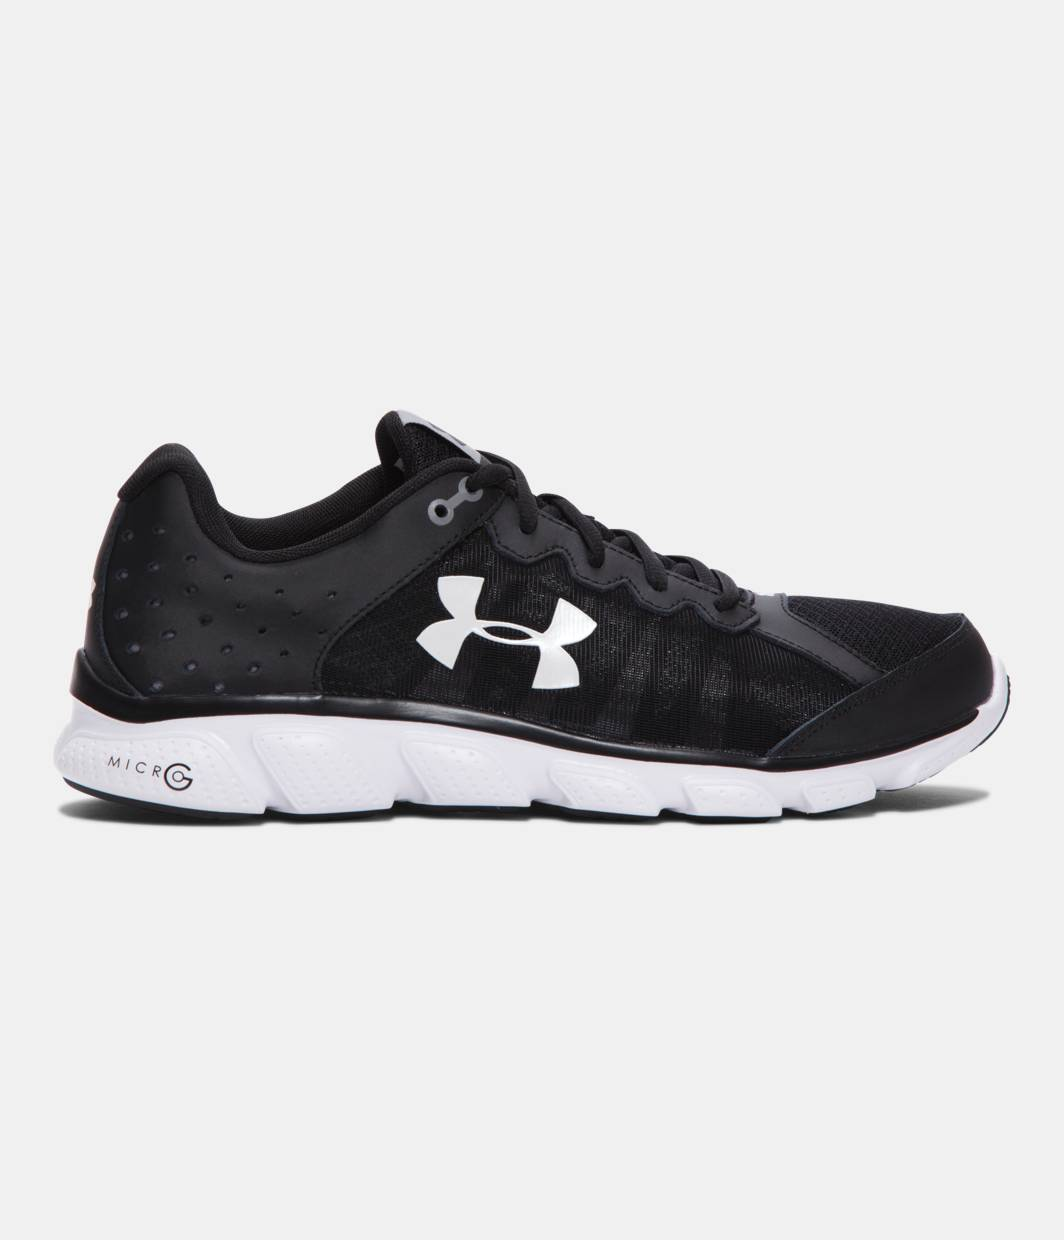 Mens Under Armour Running Shoes | Cheap Under Armour Shoes for Women | Cheap Under Armour Shoes